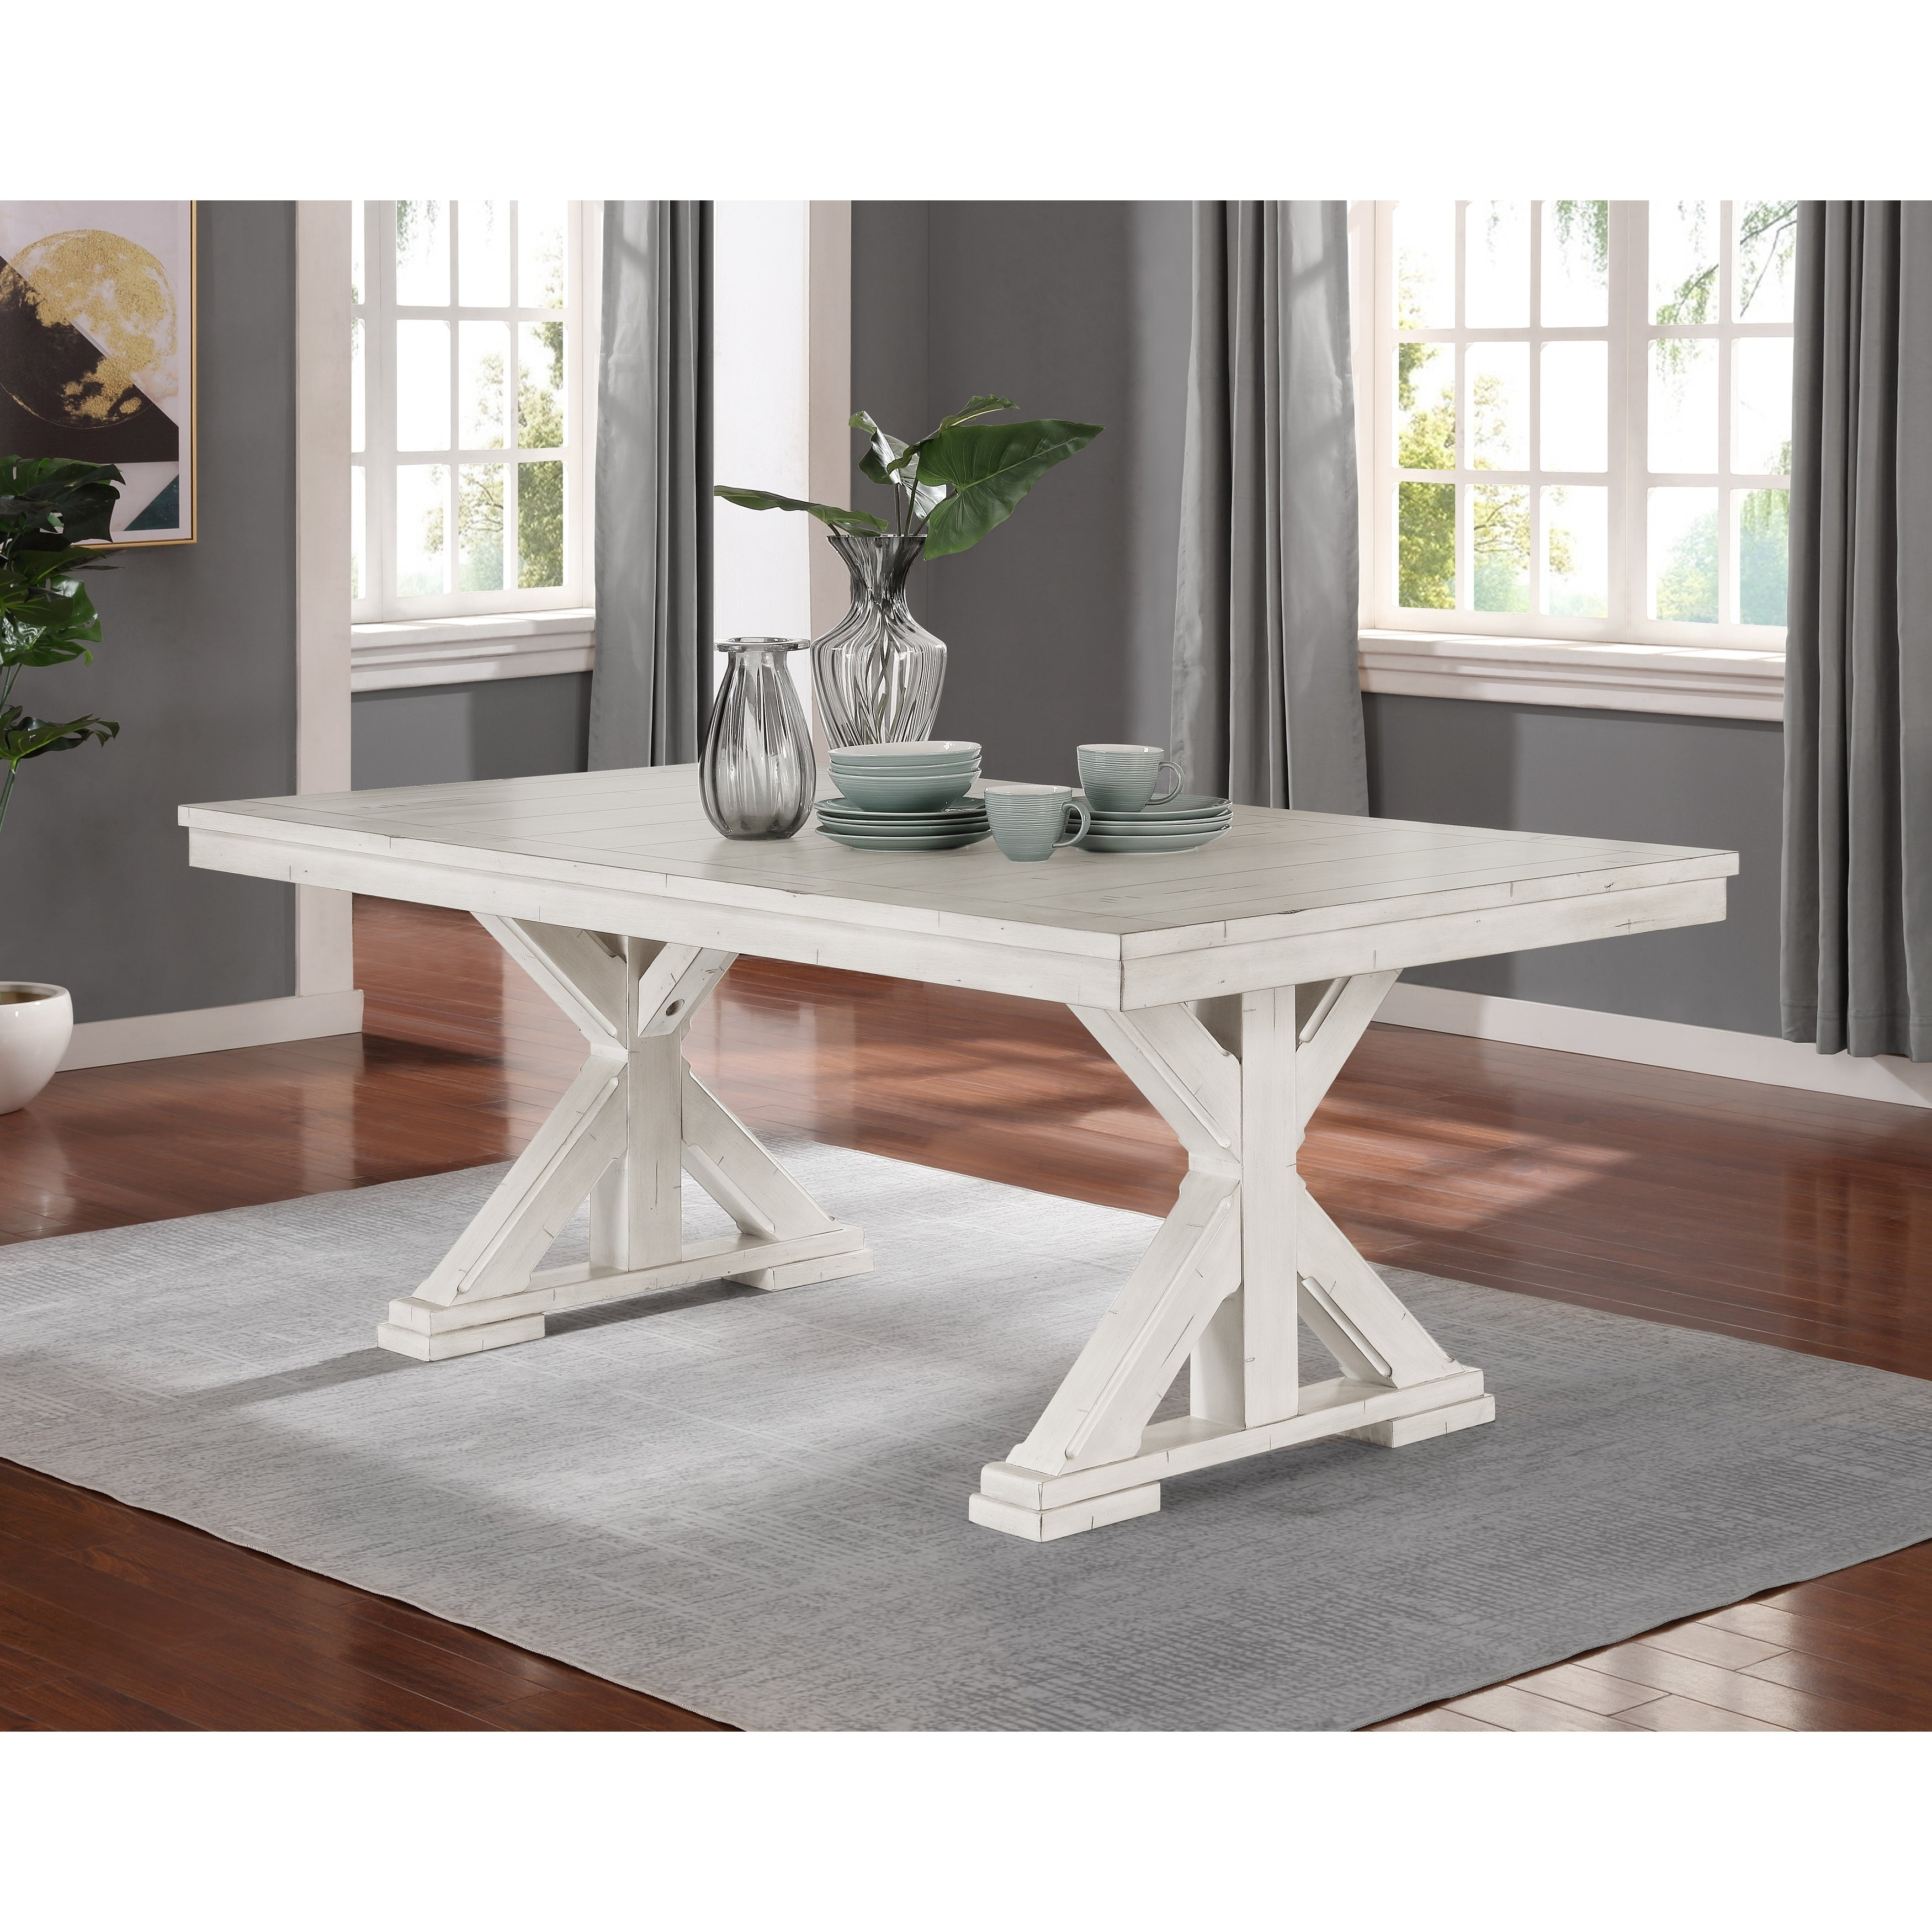 Shop Florina Antique White Wood Trestle Dining Table Overstock 29004577